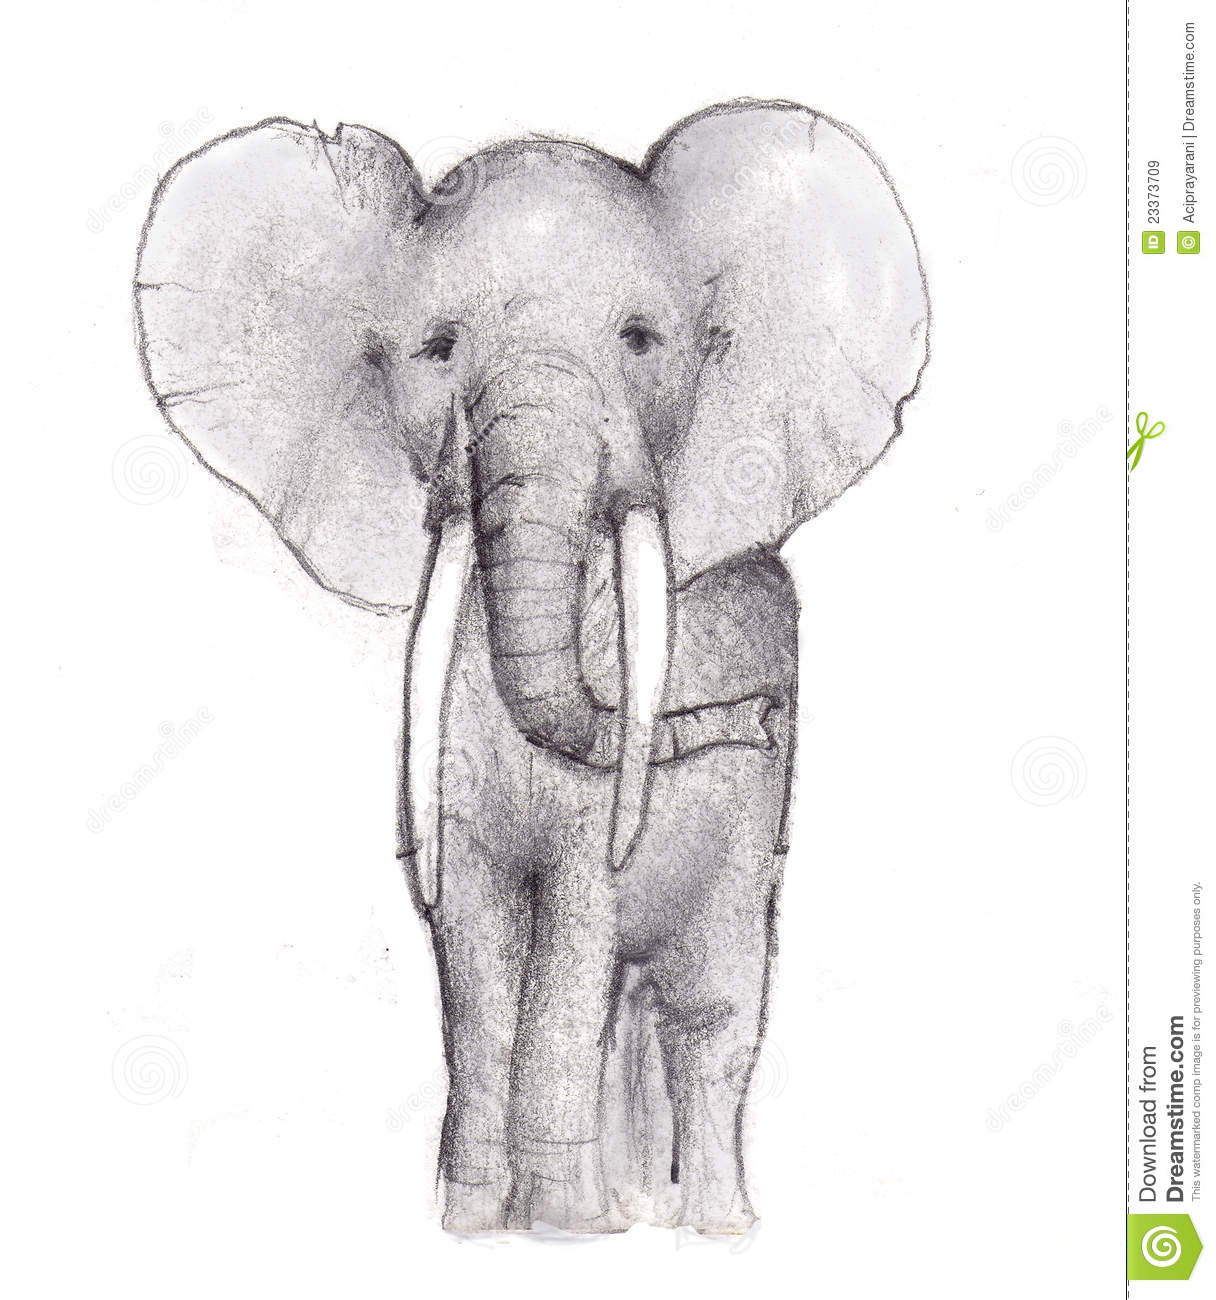 Elephant Pencil Sketch Royalty Free Stock Images - Image: 23373709